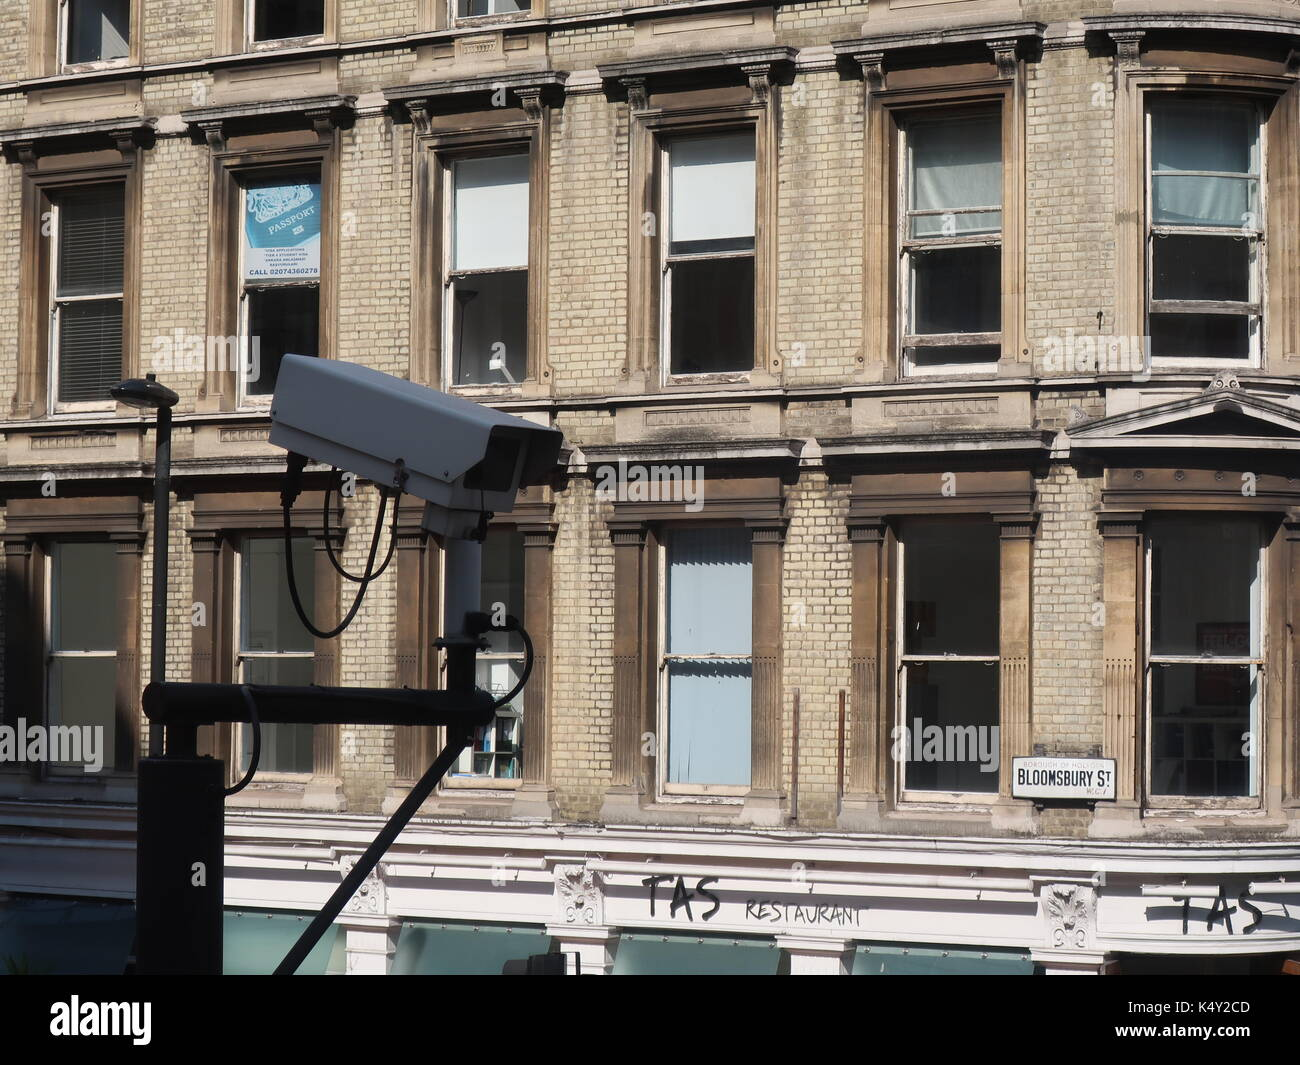 cctv-camera-outside-the-bloomsbury-stree